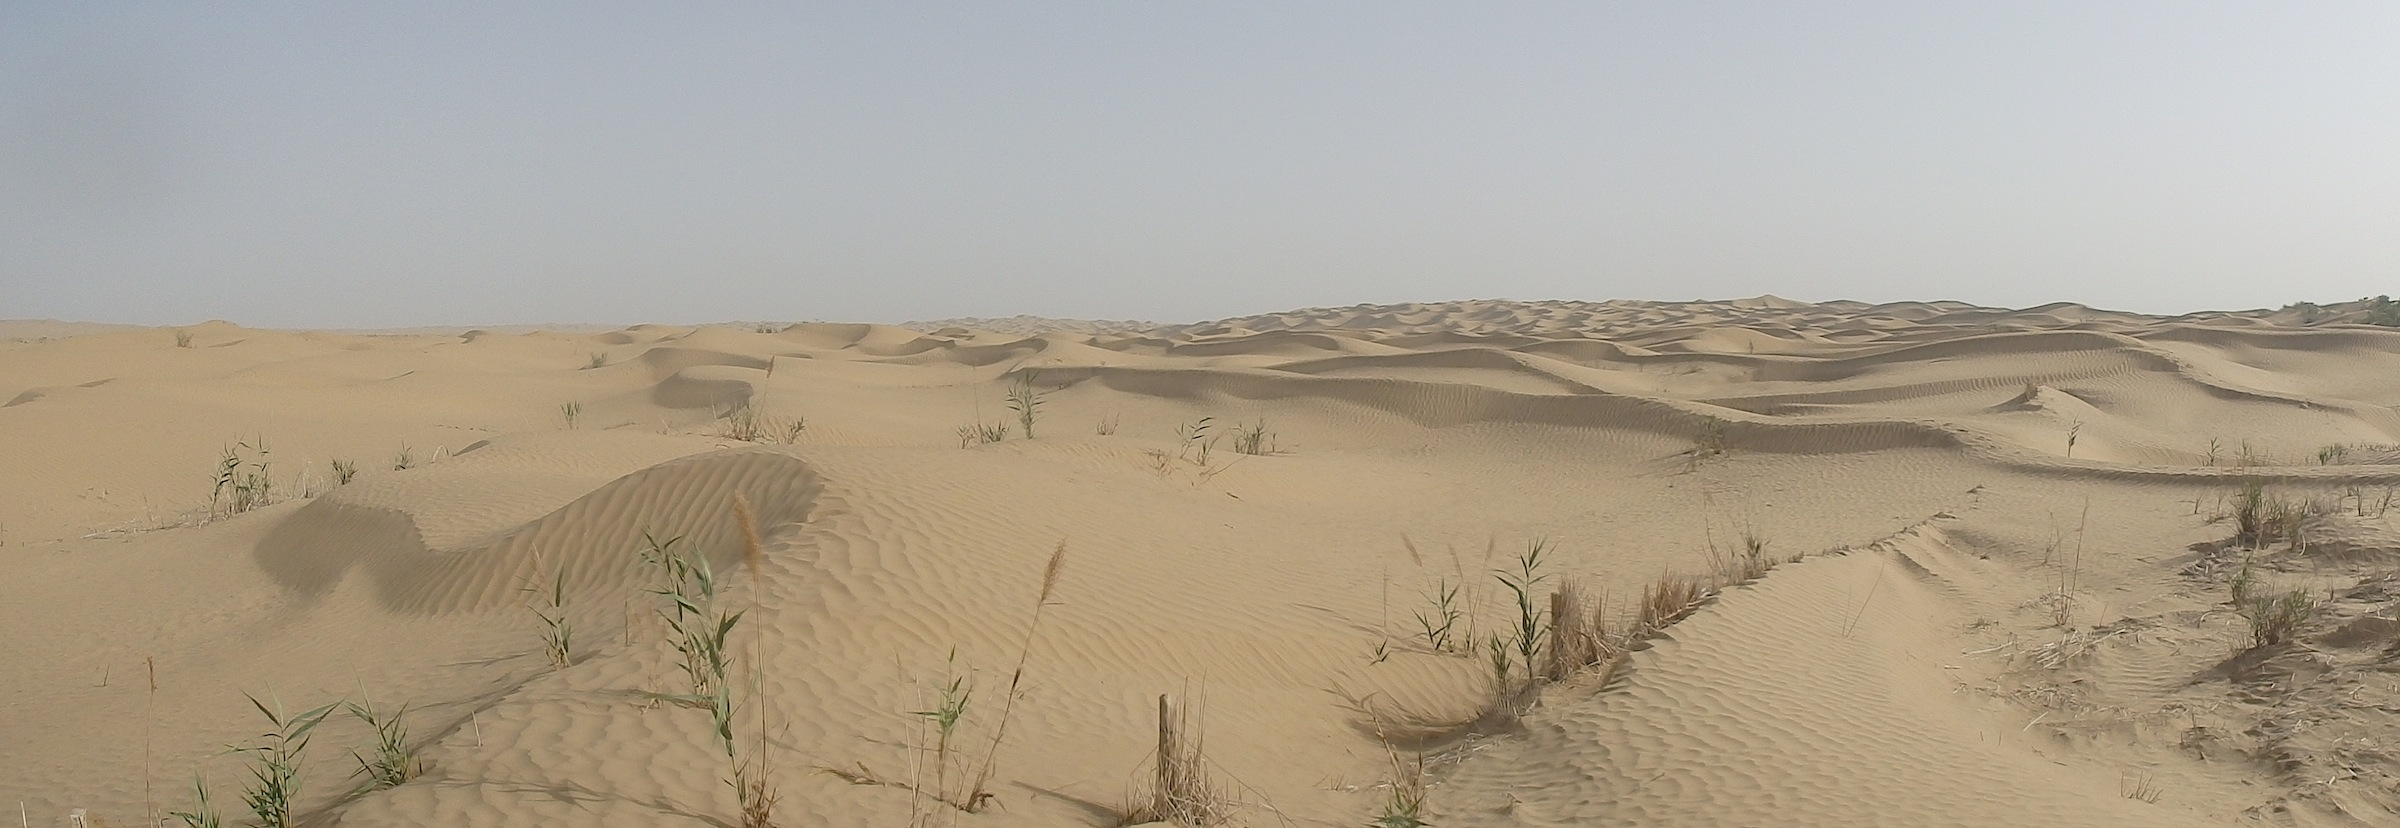 The Taklamakan Desert (Xinjiang, China)